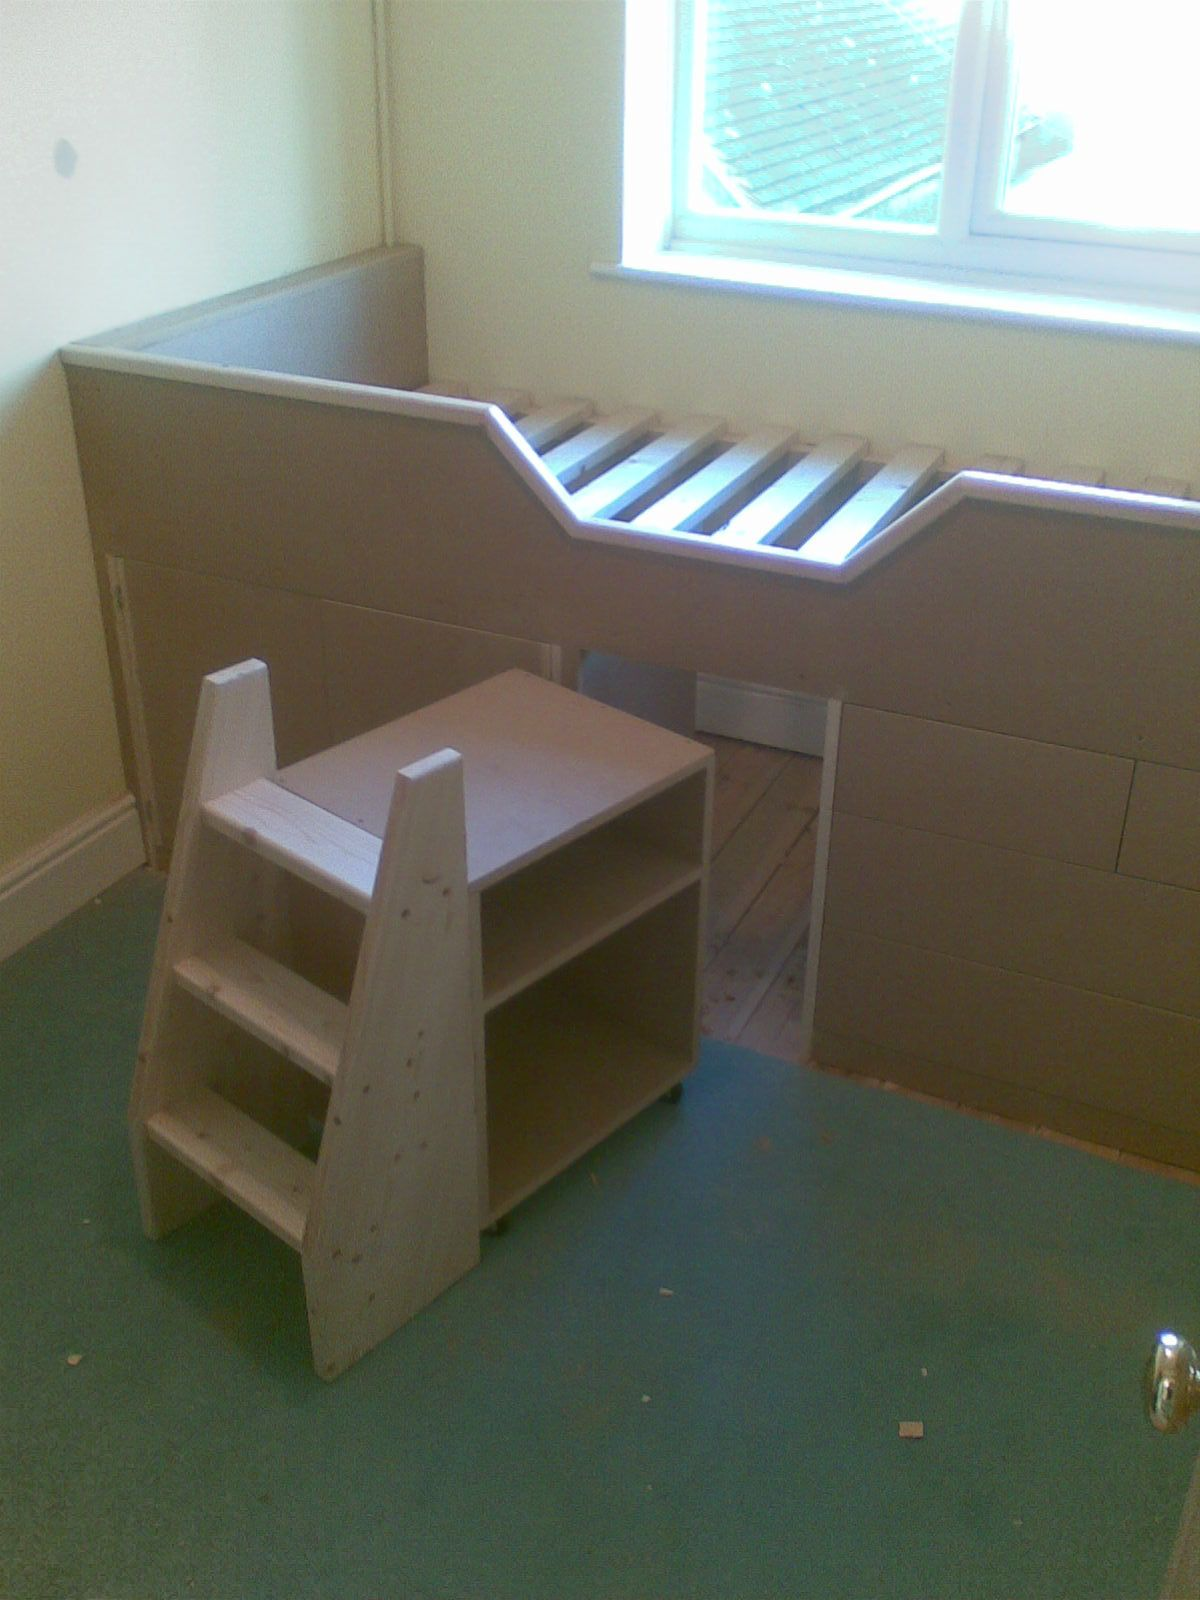 Small Box Room Cabin Bed For Grandma: The Small Bookcase And Ladder On Castors